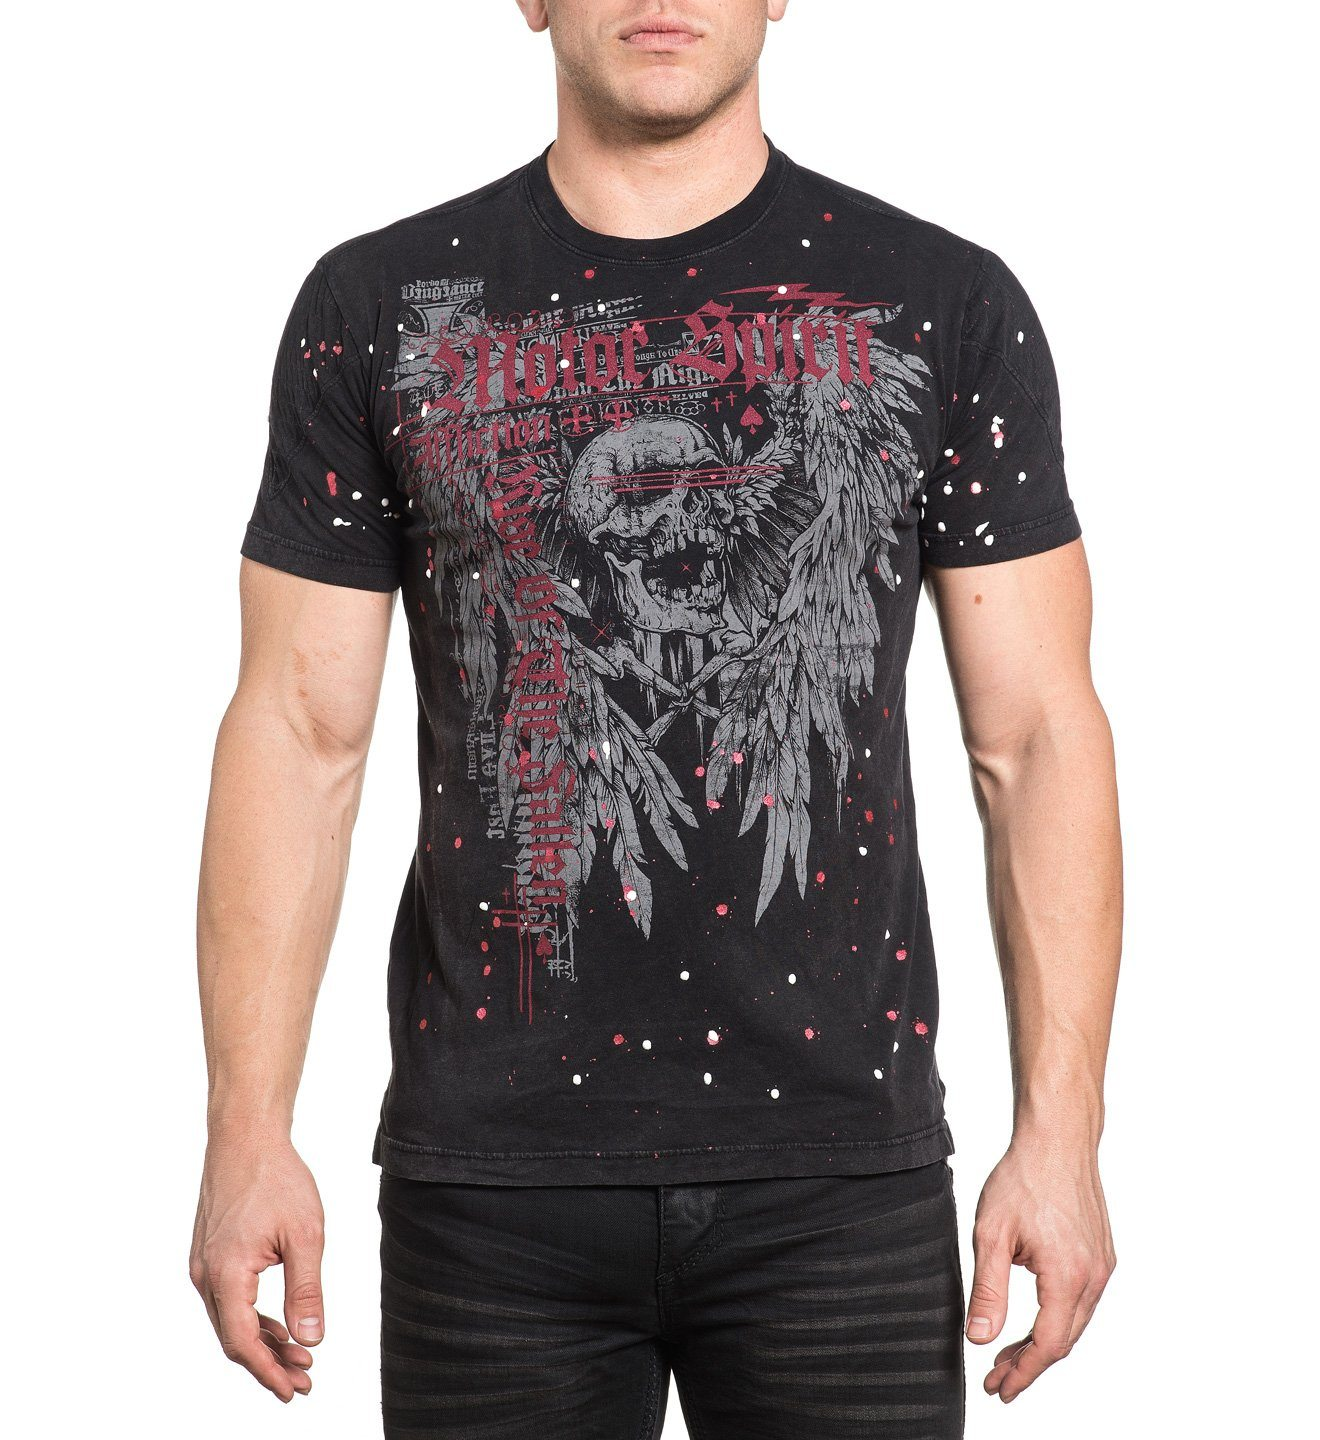 The Rise - Mens Short Sleeve Tees - Affliction Clothing